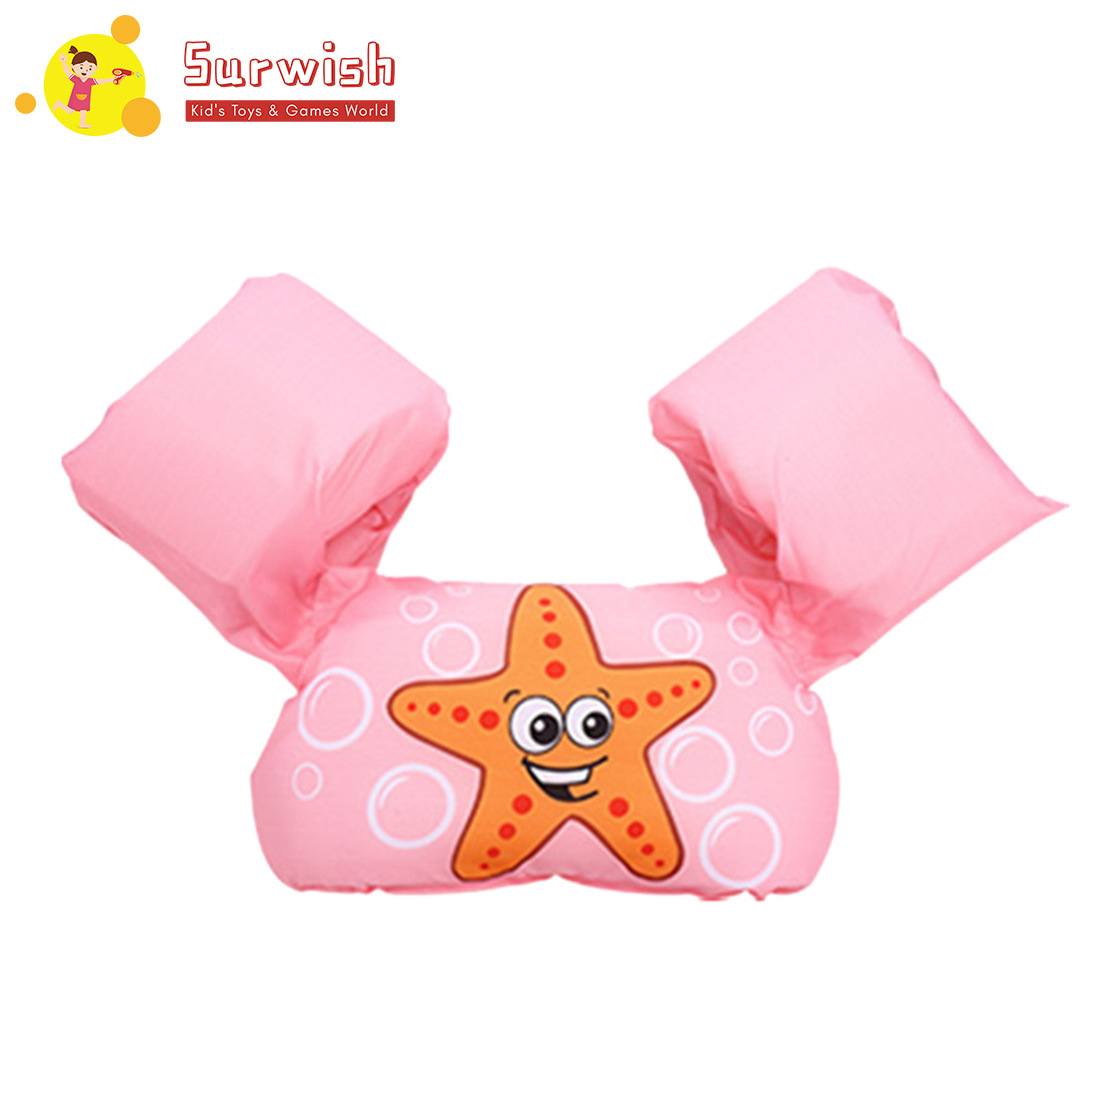 Surwish Baby Inflatable Swimming Arm Bands Floatation Sleeves Water Wings - Pink/Blue